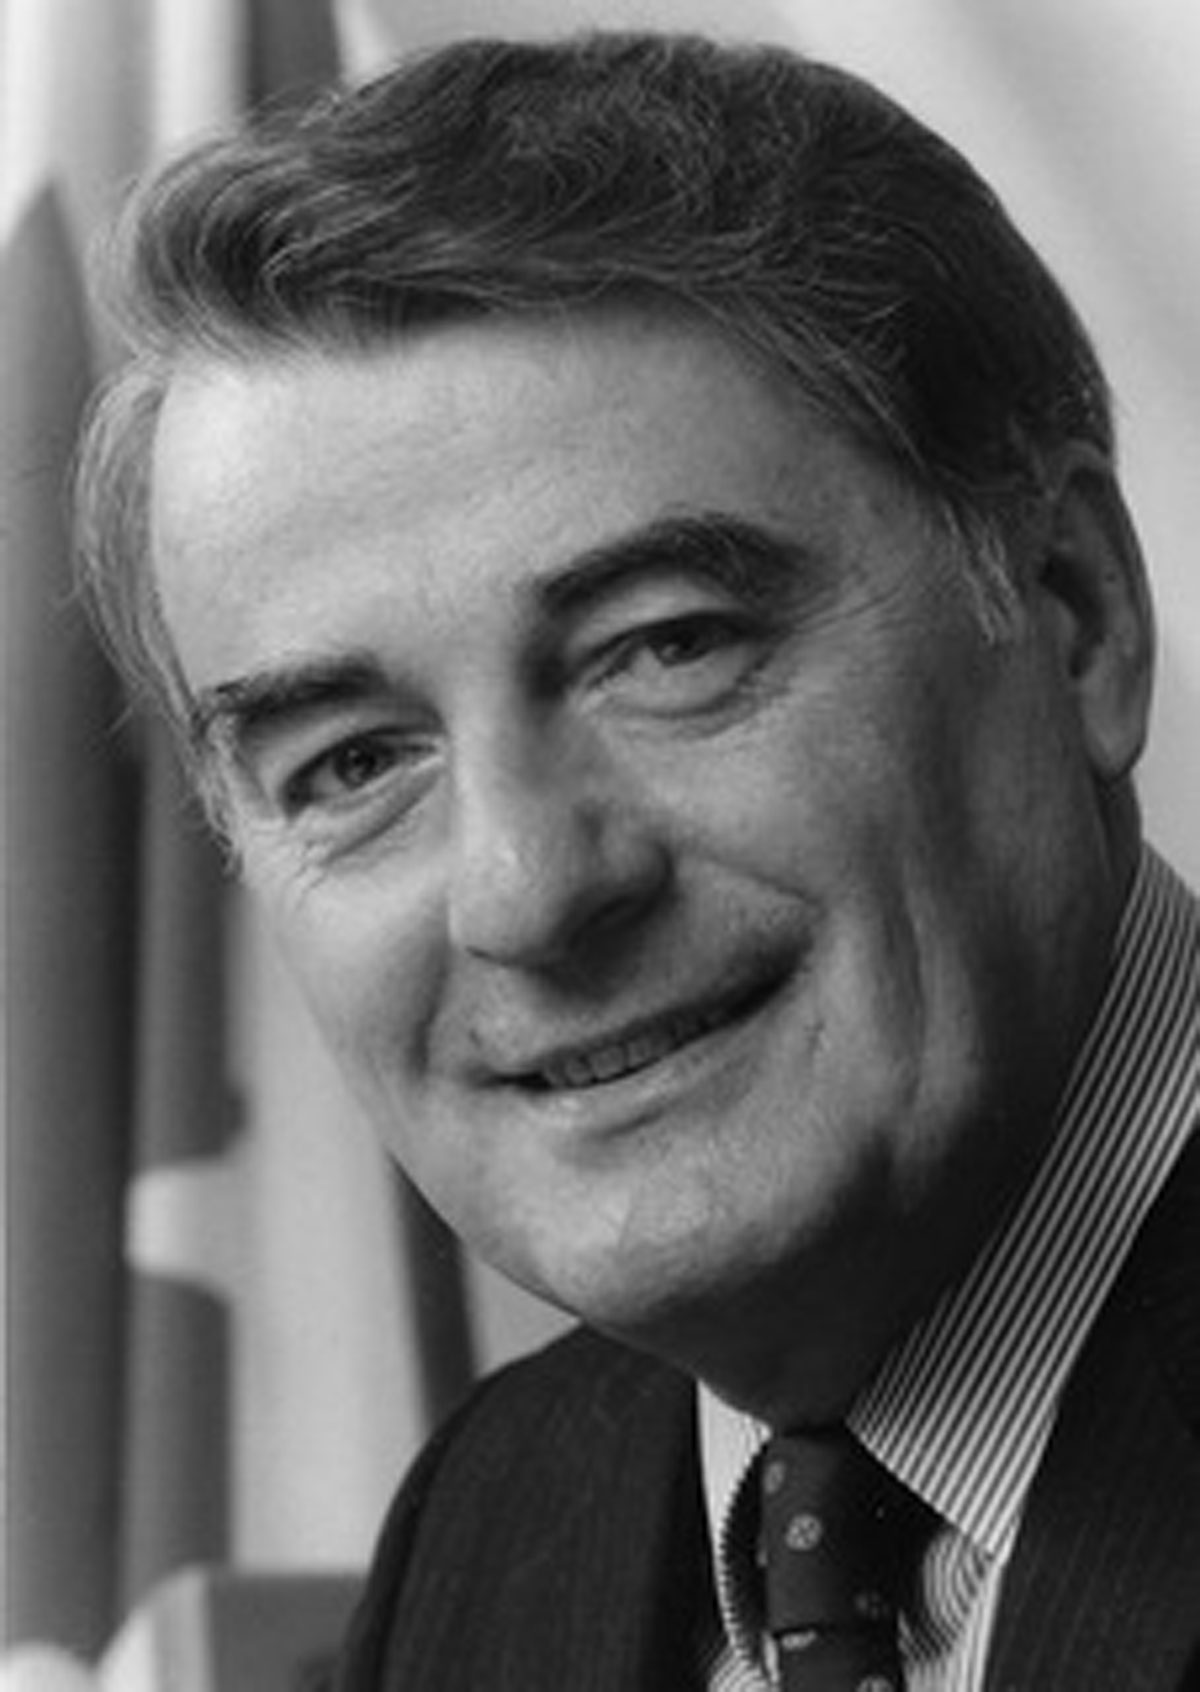 Derek Blackburn (1934 - 2017) was the New Democratic Party MP for the federal riding of Brant from 1971 to 1993. Born in Sault Ste. Marie and raised in Stratford, Blackburn was a teacher at Paris District High School before he became MP.  Image courtesy of the Brant Historical Society